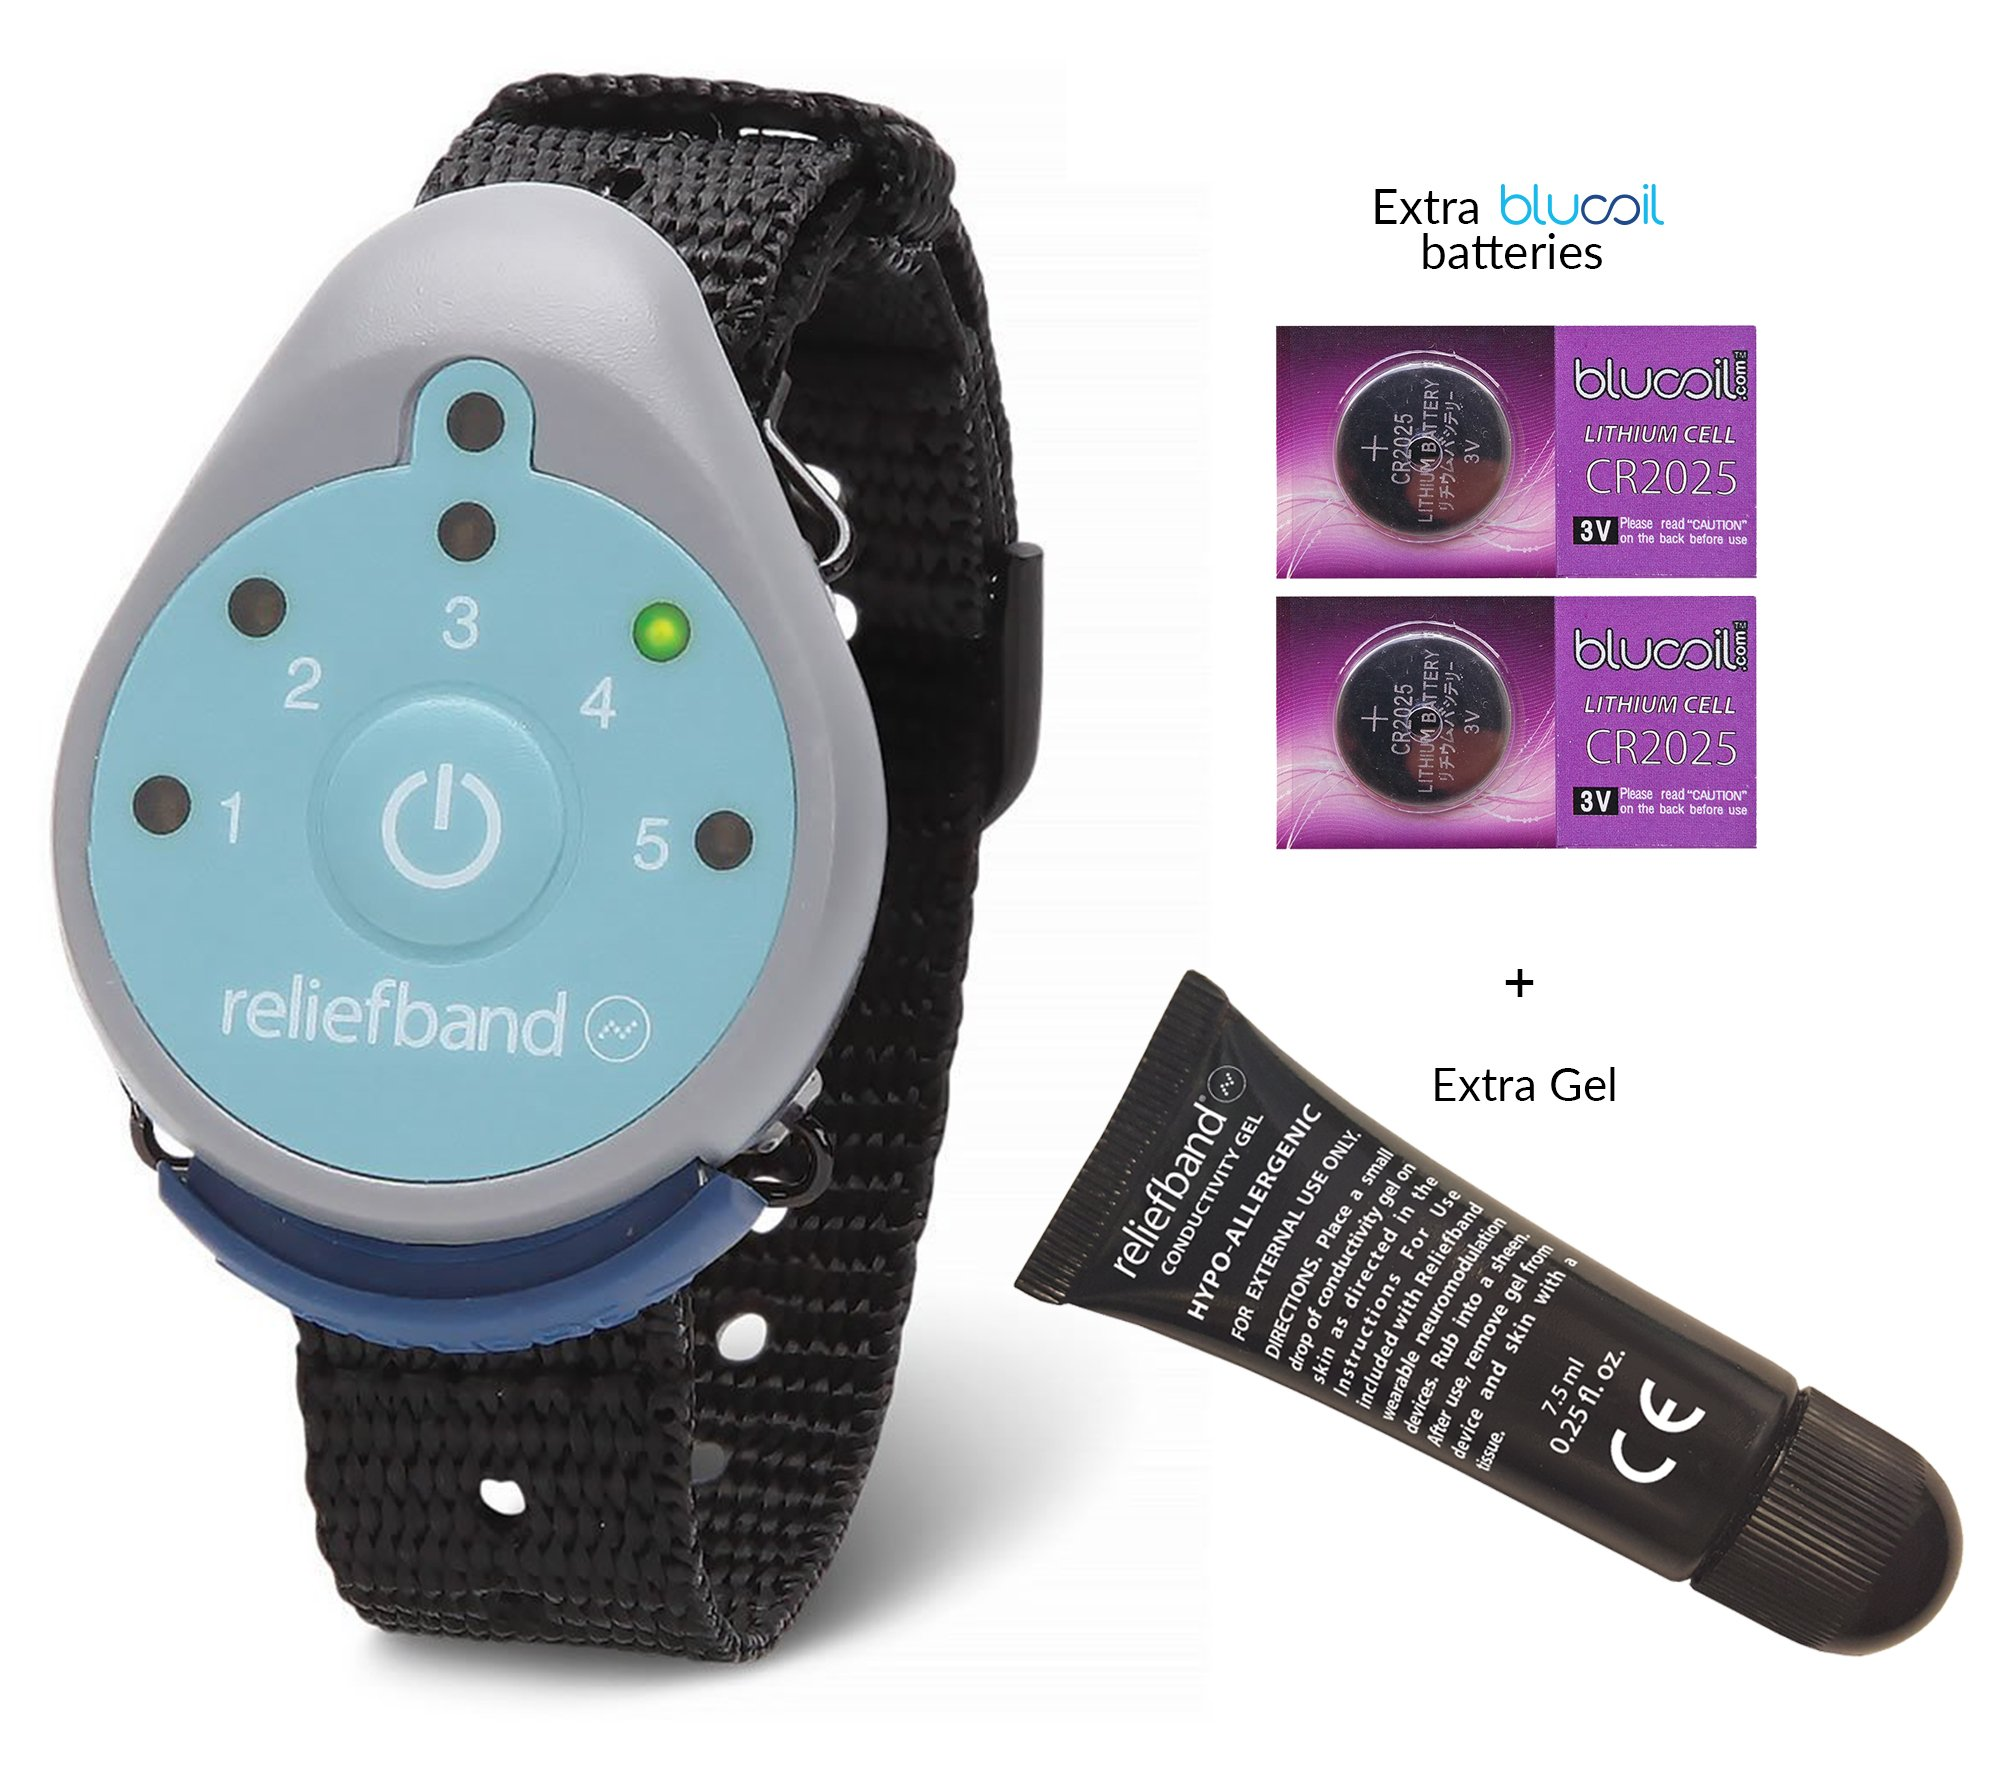 Reliefband for Motion and Morning Sickness BUNDLE - INCLUDES - 2 Blucoil CR2025 Batteries AND Replacement Conductivity Gel Tube 7.5ml